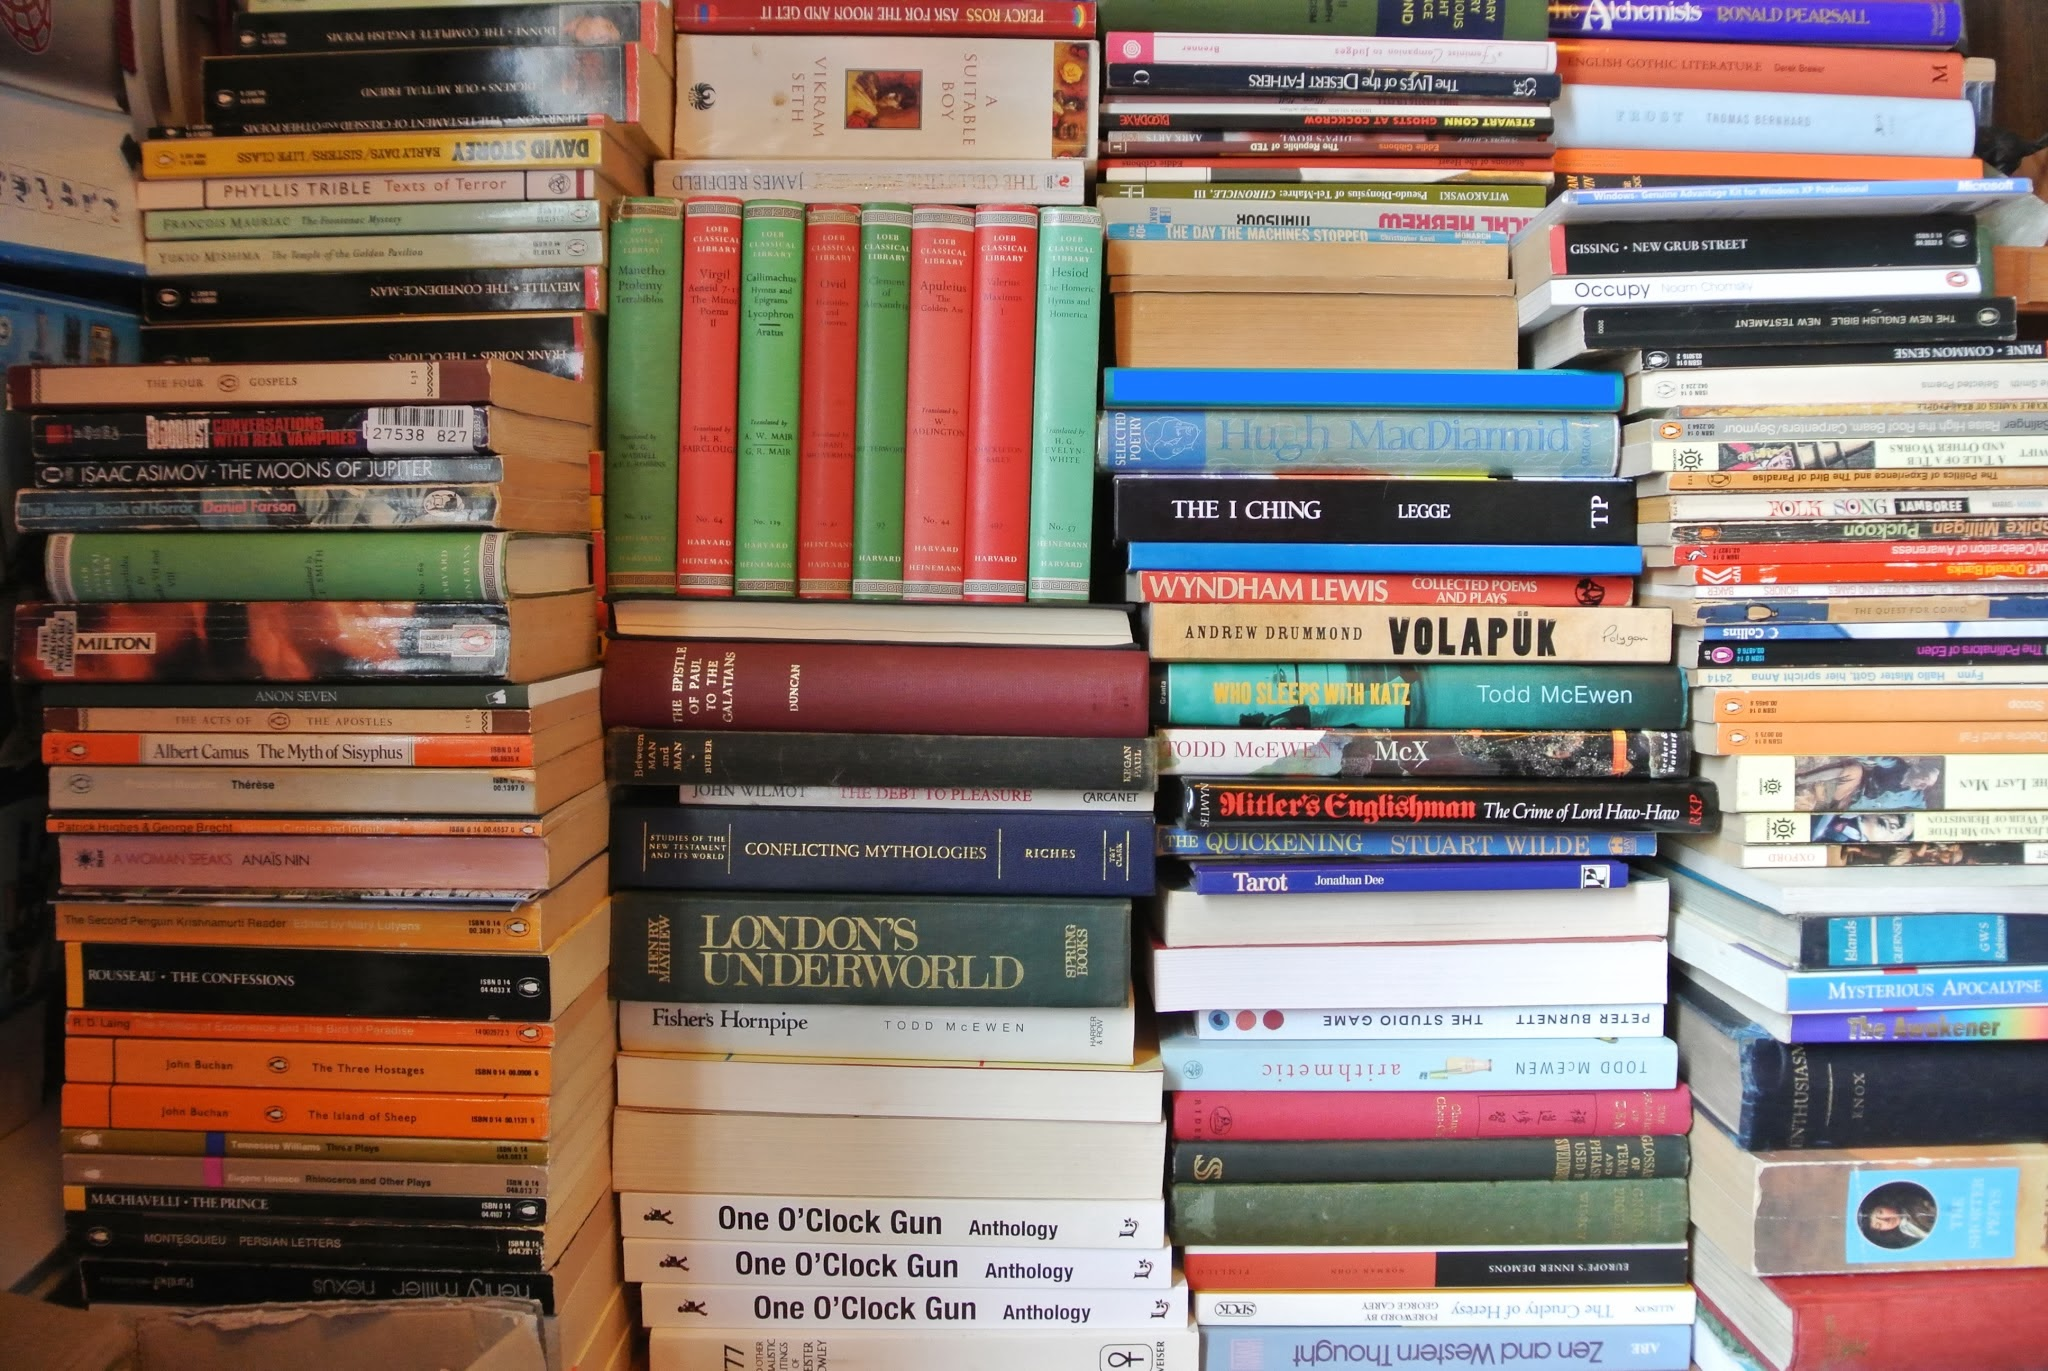 File:Stack of Books.jpg - Wikimedia Commons